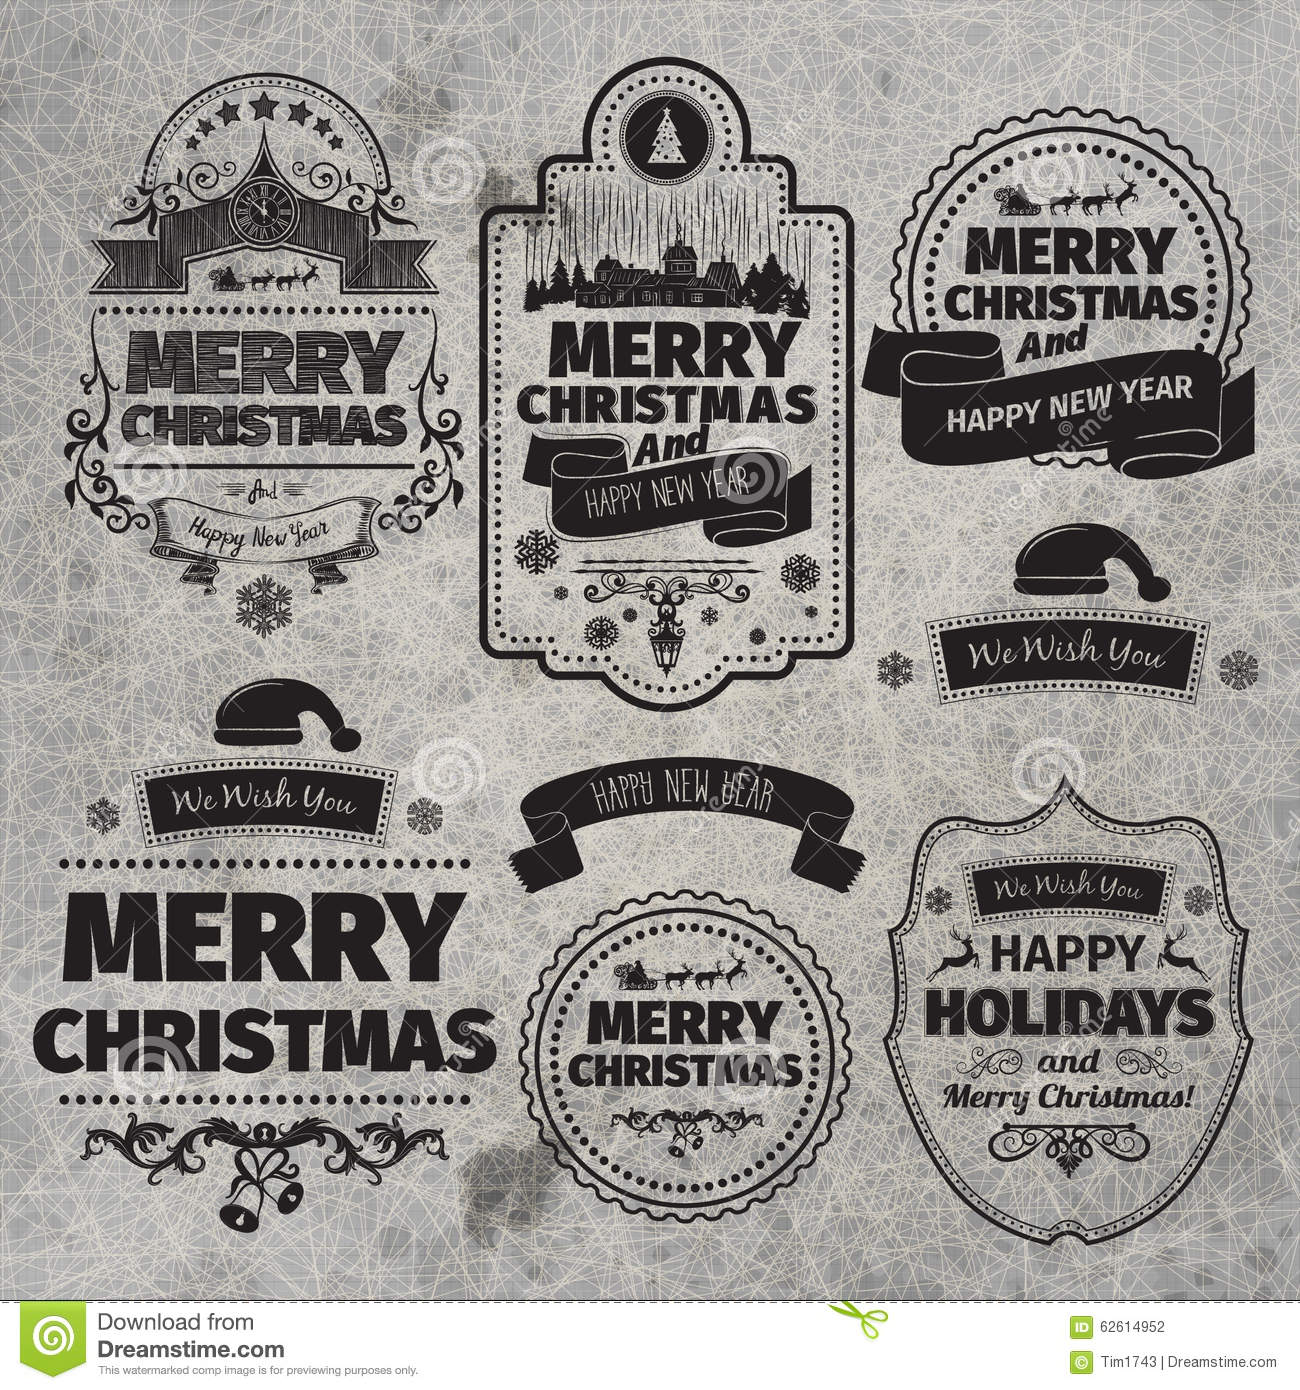 set of christmas and happy new year labels with retro vintage styled design